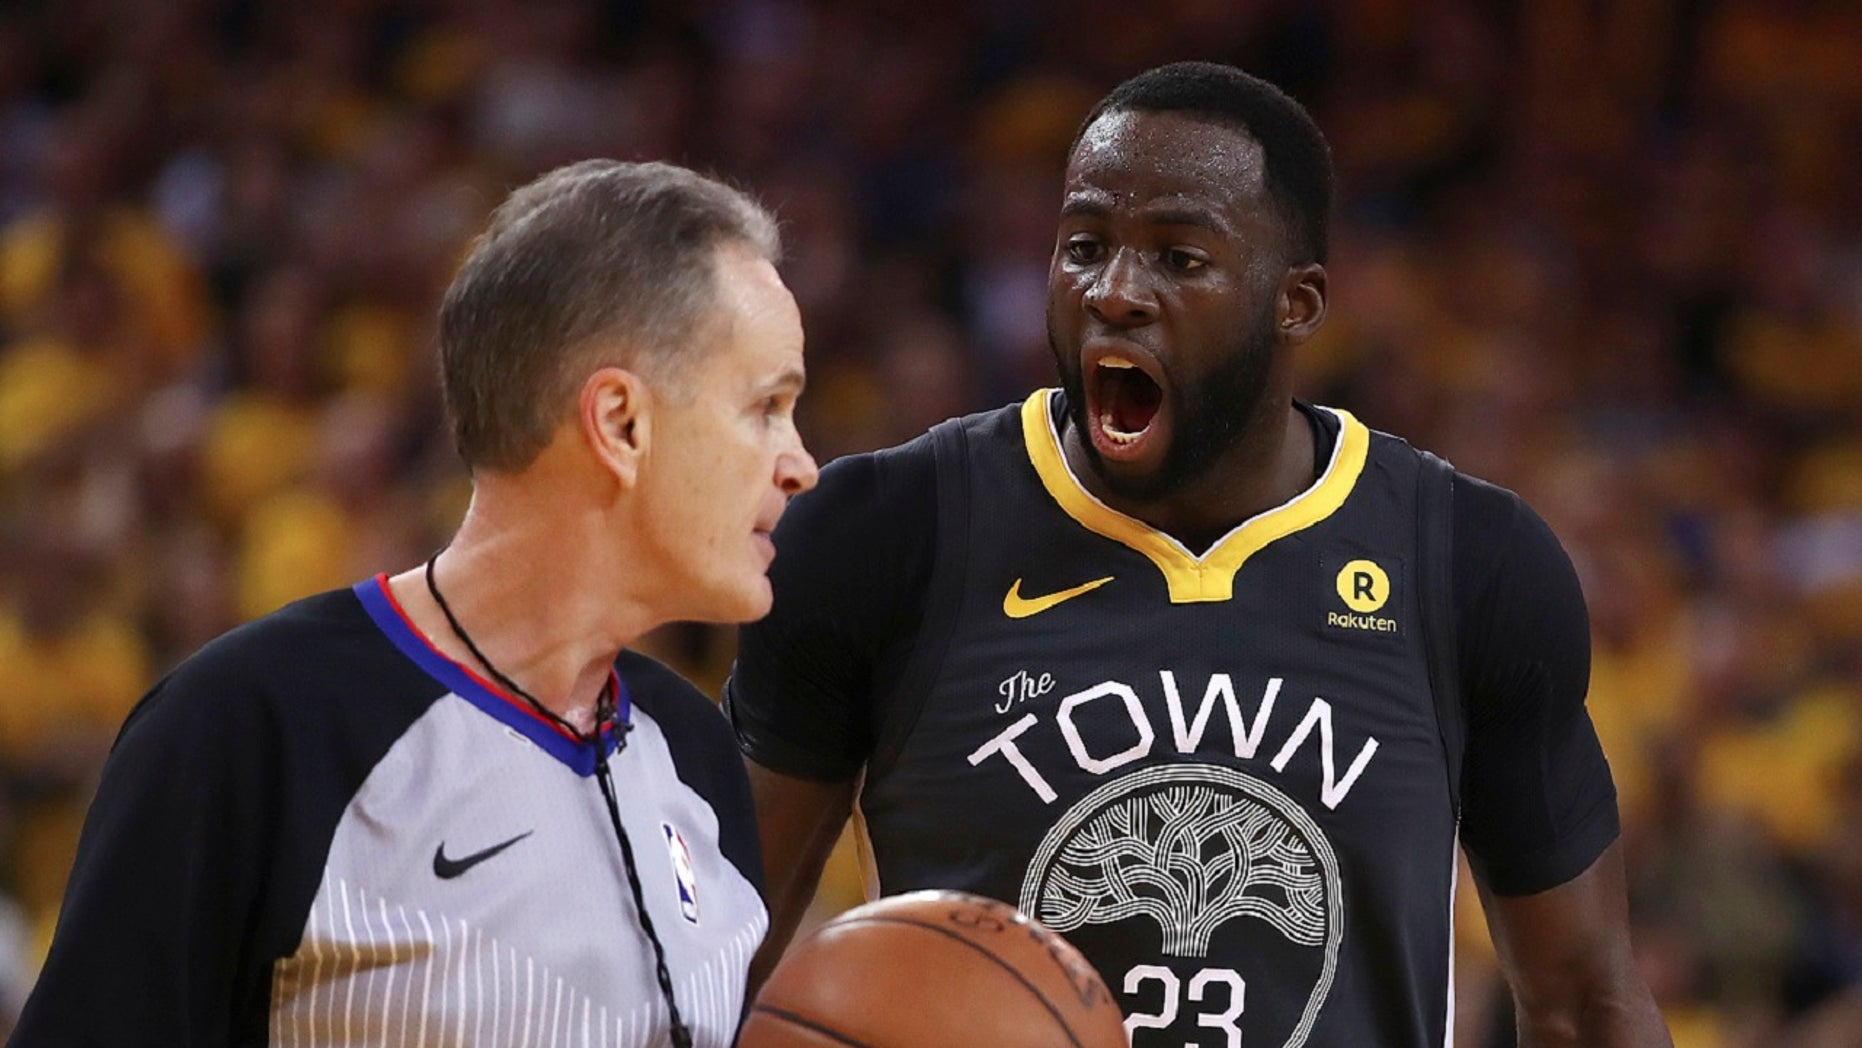 """Golden State Warriors' Draymond Green hit back at Charles Barkley after Tuesday night's win over the New Orleans Pelicans for comments he made about wanting to """"punch him in the face."""""""